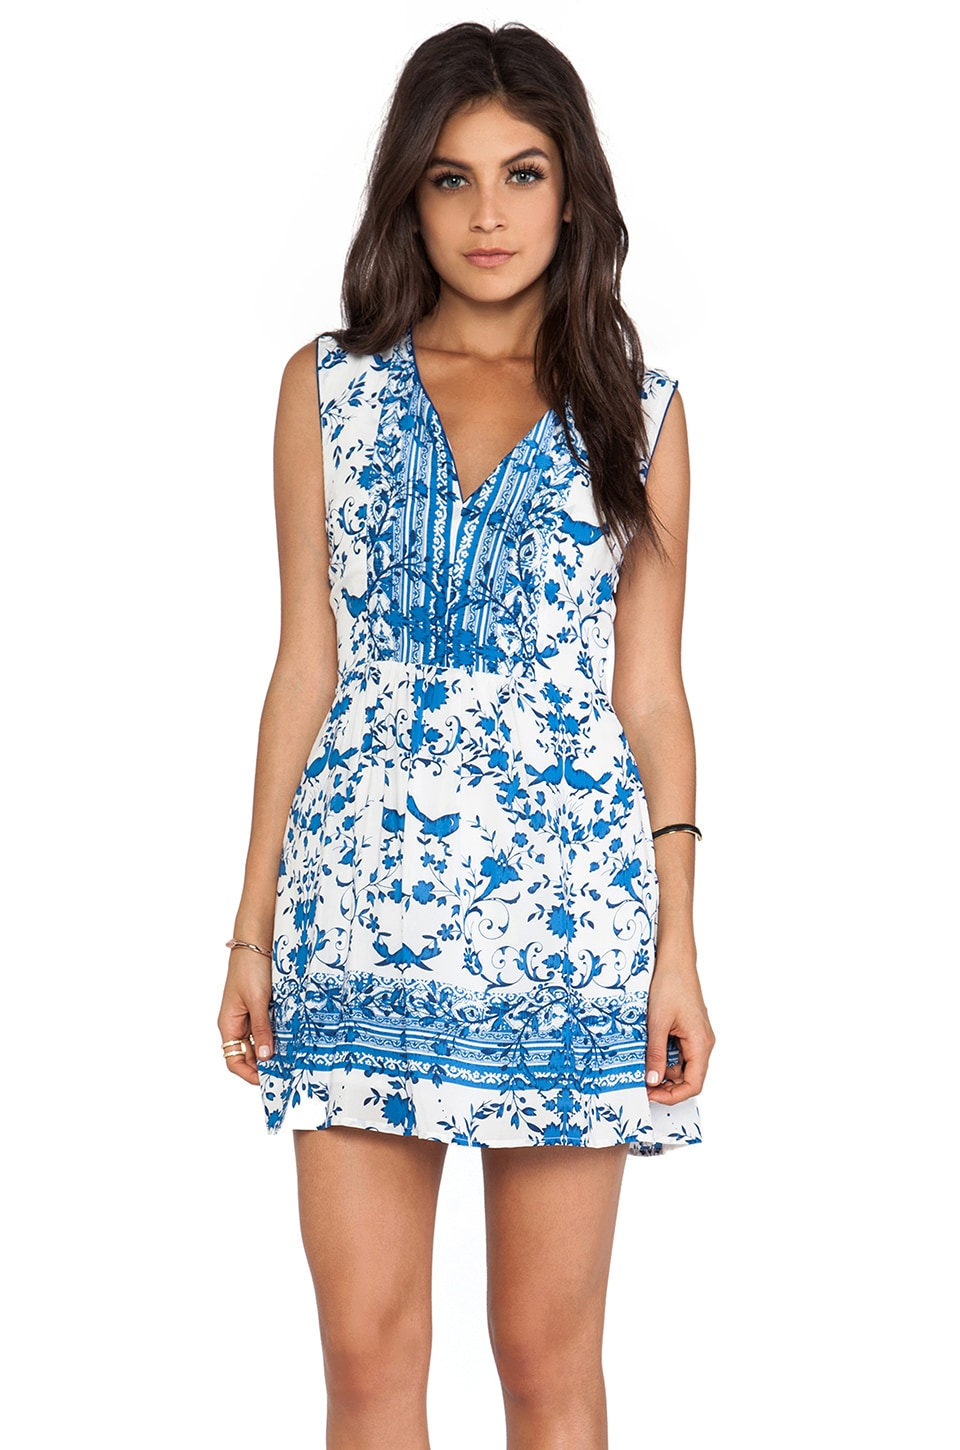 Wish Tank Mini Dress in Blue Bird